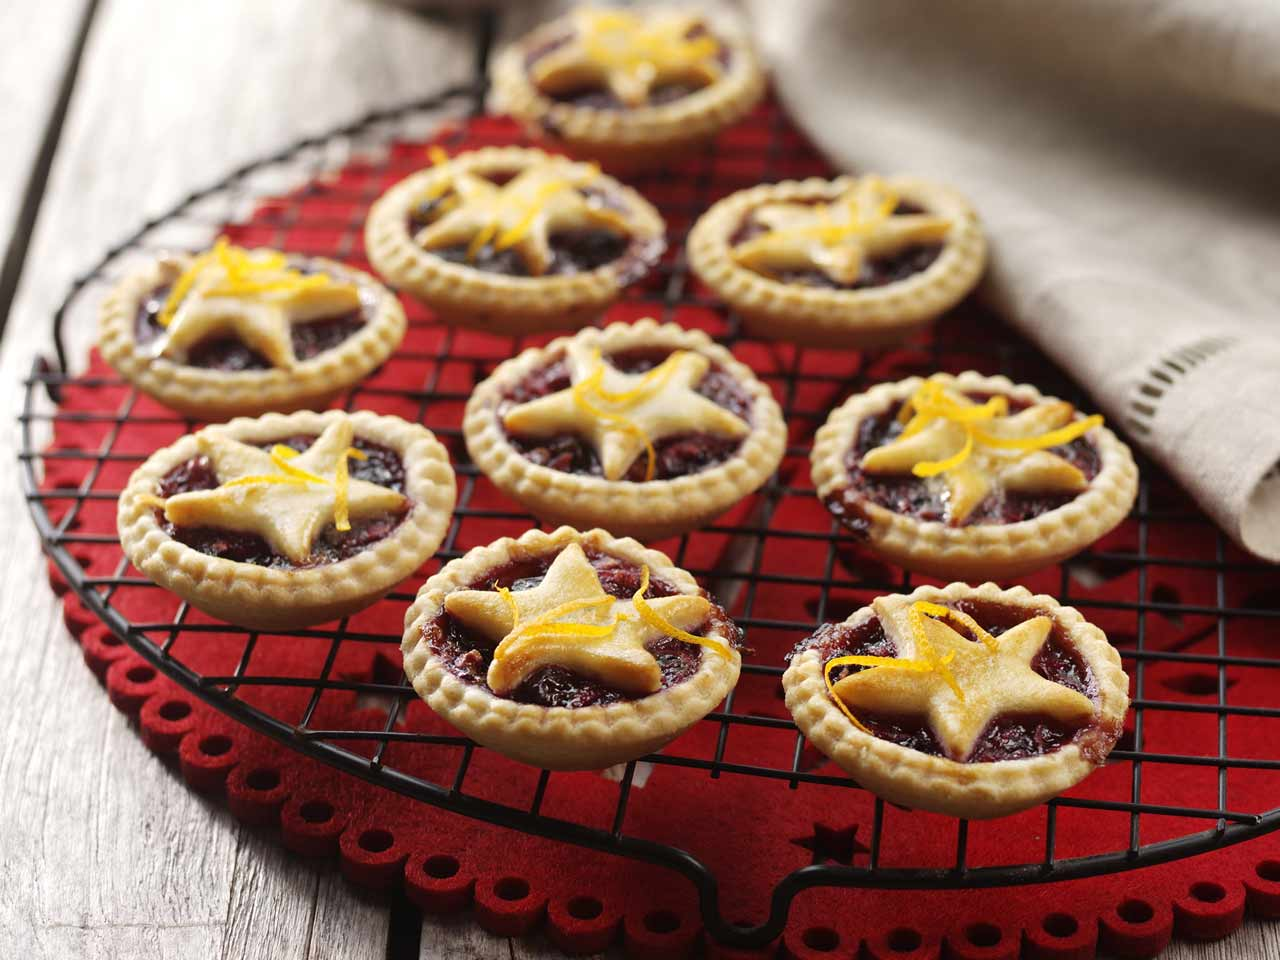 Blackcurrant and apple mince pies